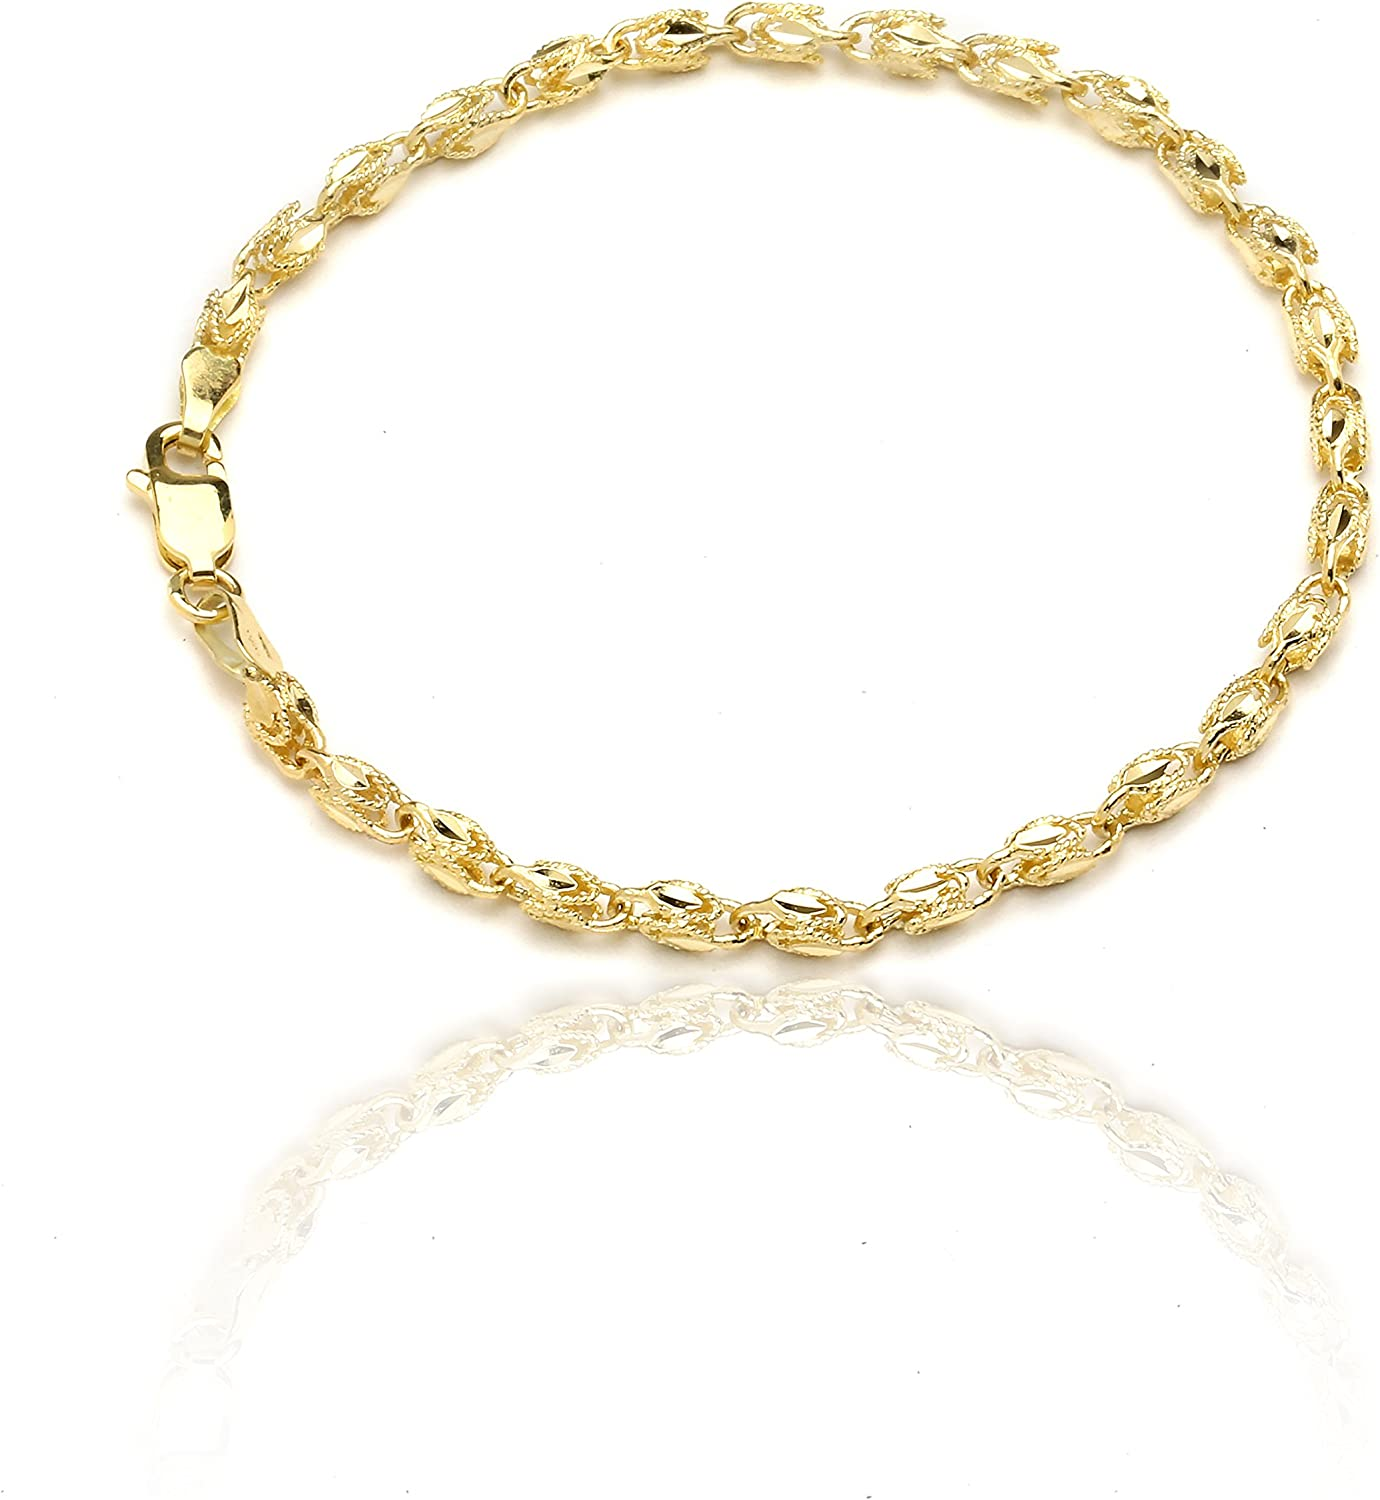 Floreo 10k Yellow Gold 2.5mm Turkish Rope Chain Bracelet and Anklet